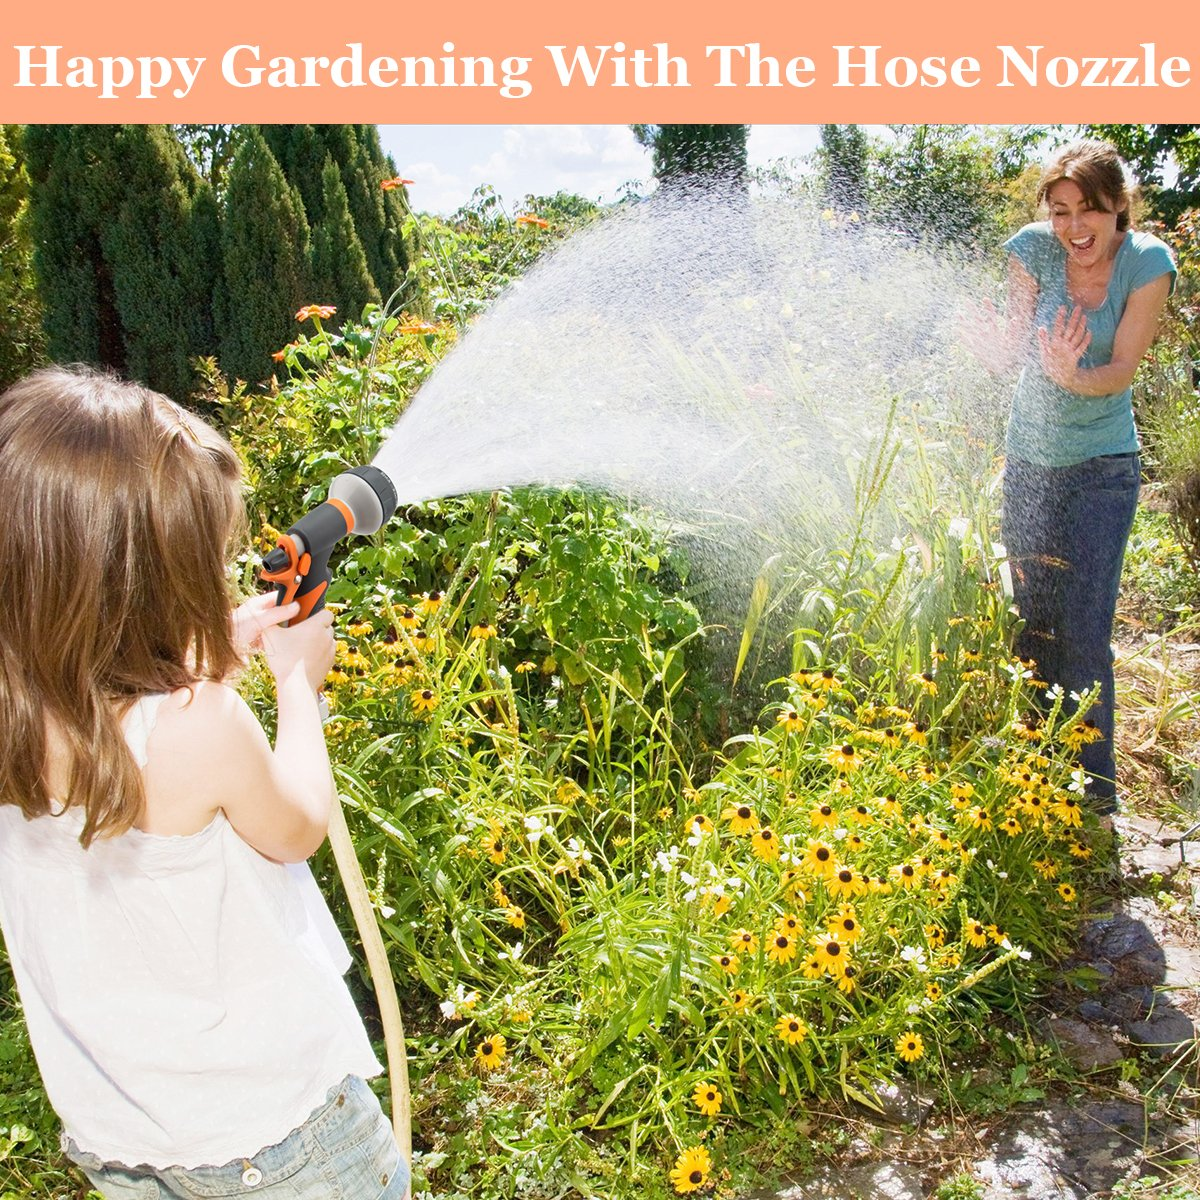 Hose Nozzle Garden Hose Nozzle Hose Spray Nozzle Leak Free High Pressure Heavy Duty 8 Pattern For Watering Plant Washing Cars Pets Shower by Easynozzle (Image #2)